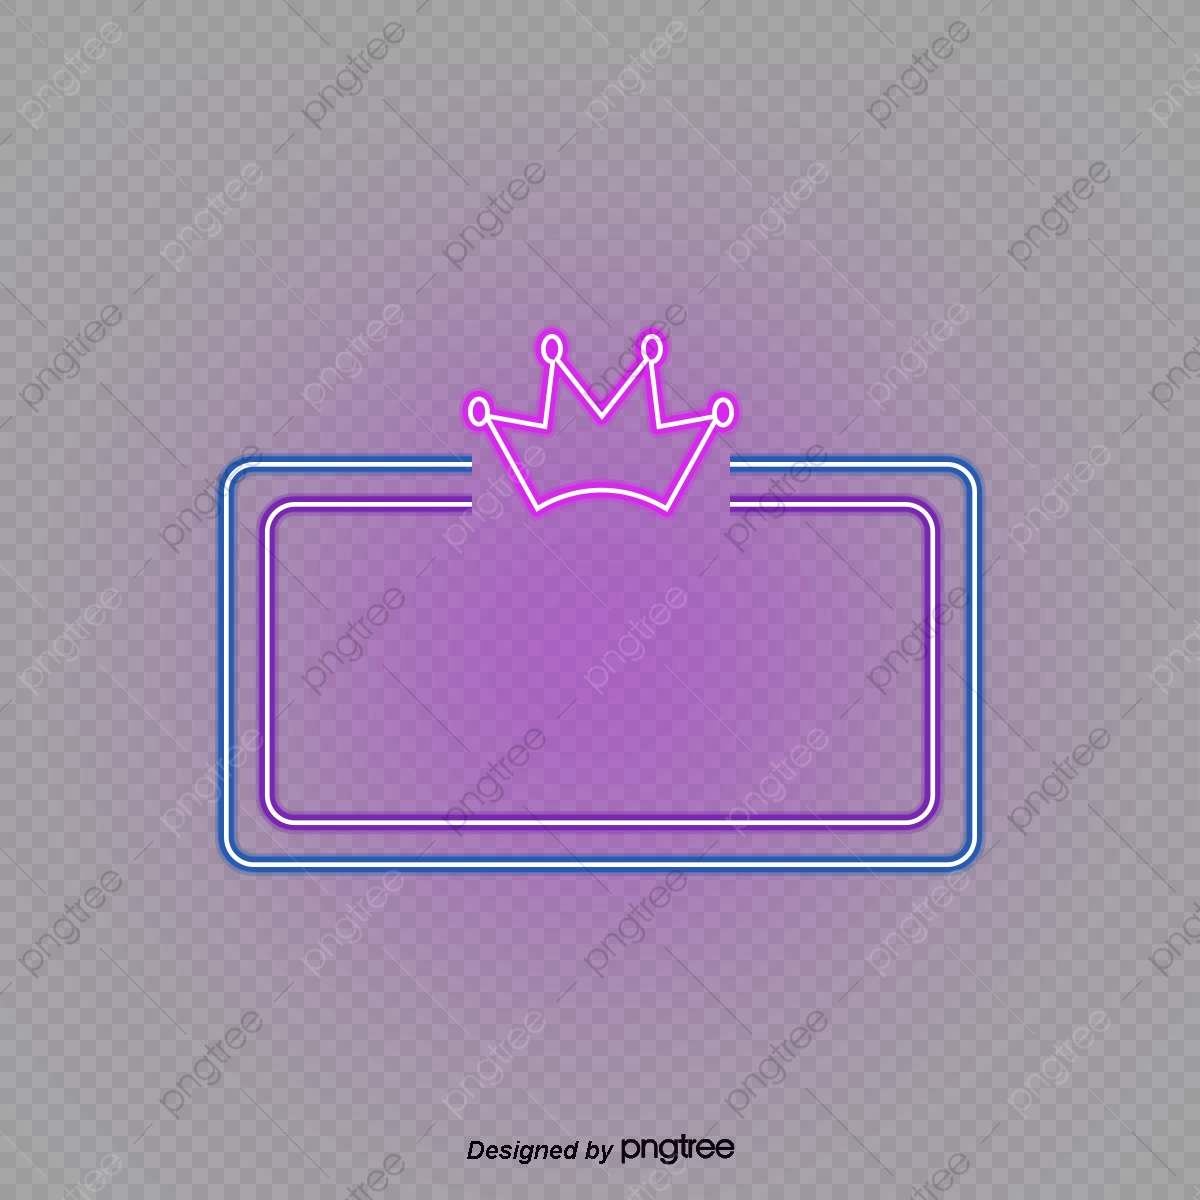 Cartoon Crown Png Images Vector And Psd Files Free Download On Pngtree It is good way to catch. https pngtree com freepng neon crown border 4242188 html